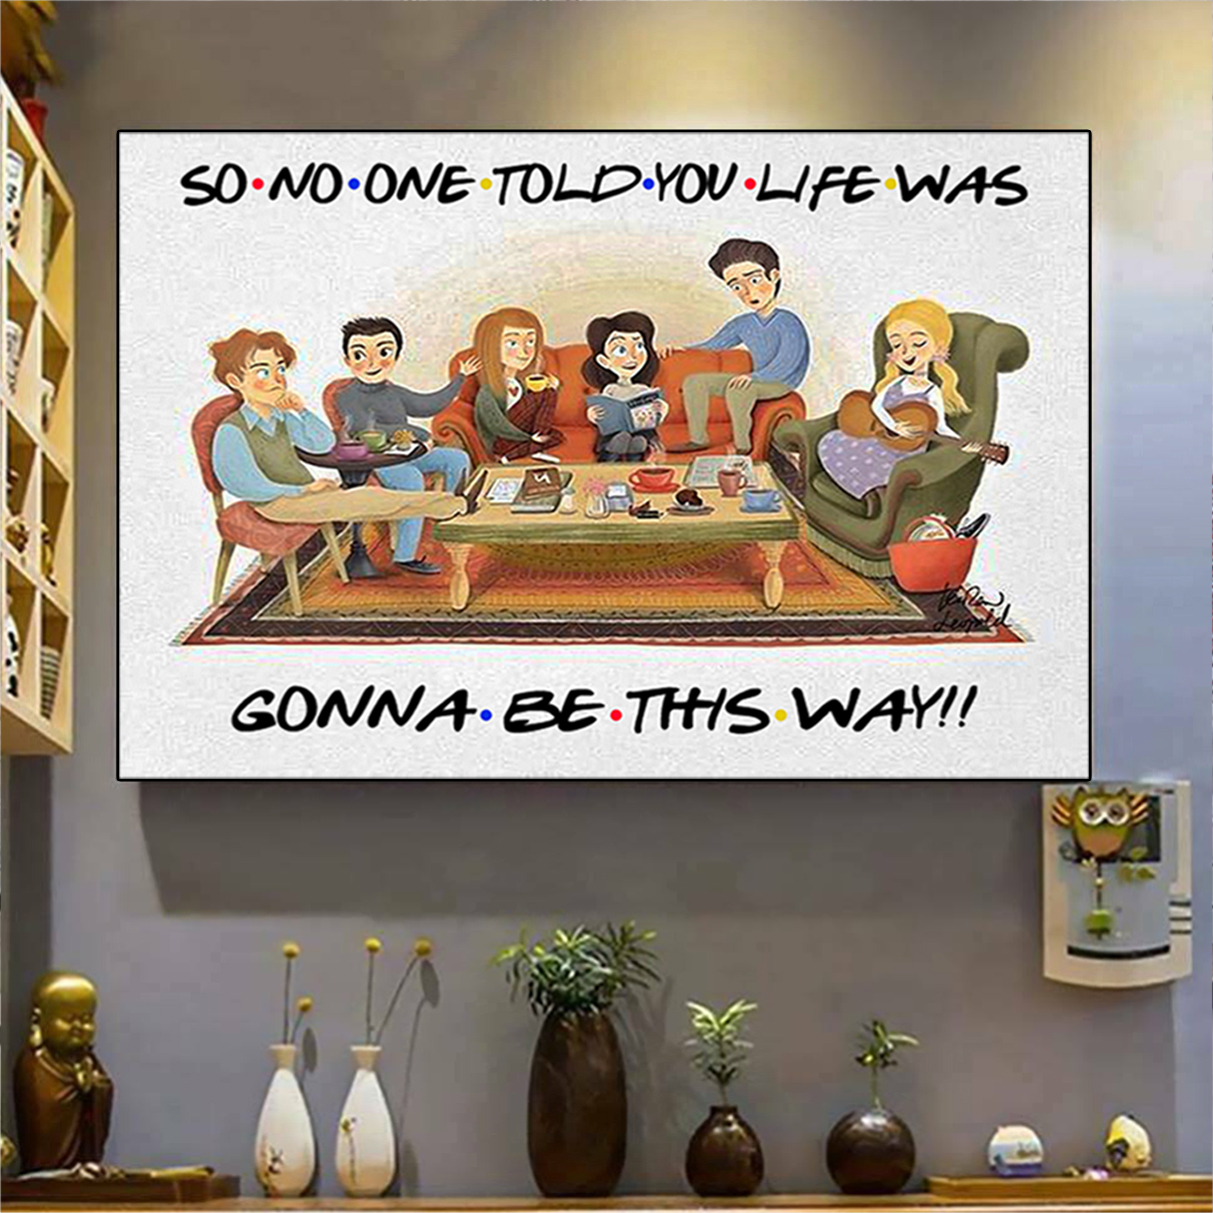 Friends so no one told you life was gonna be this way poster and canvas prints A2